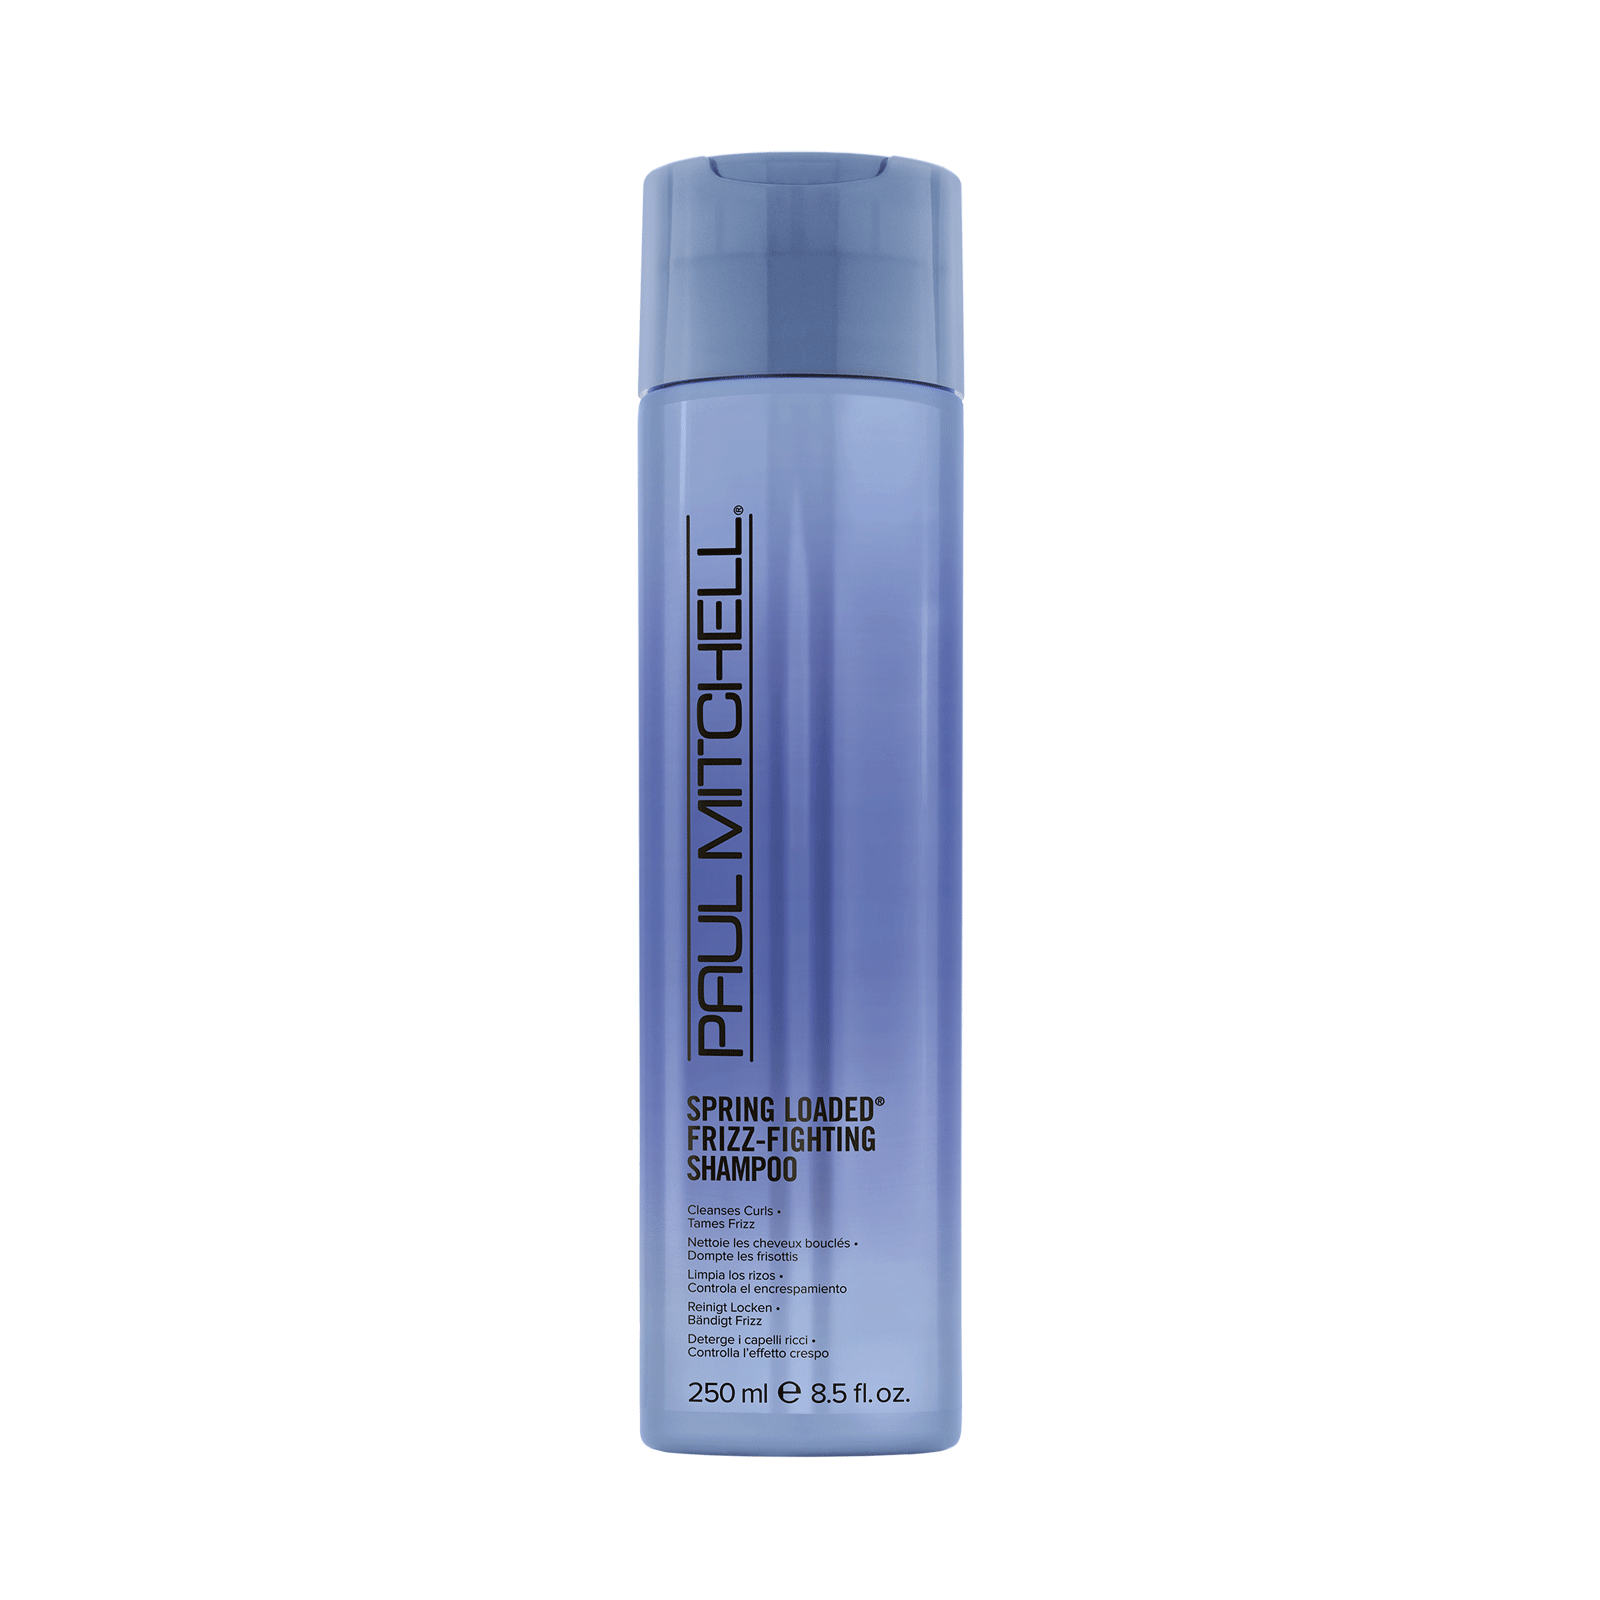 Spring Loaded Detangling Shampoo